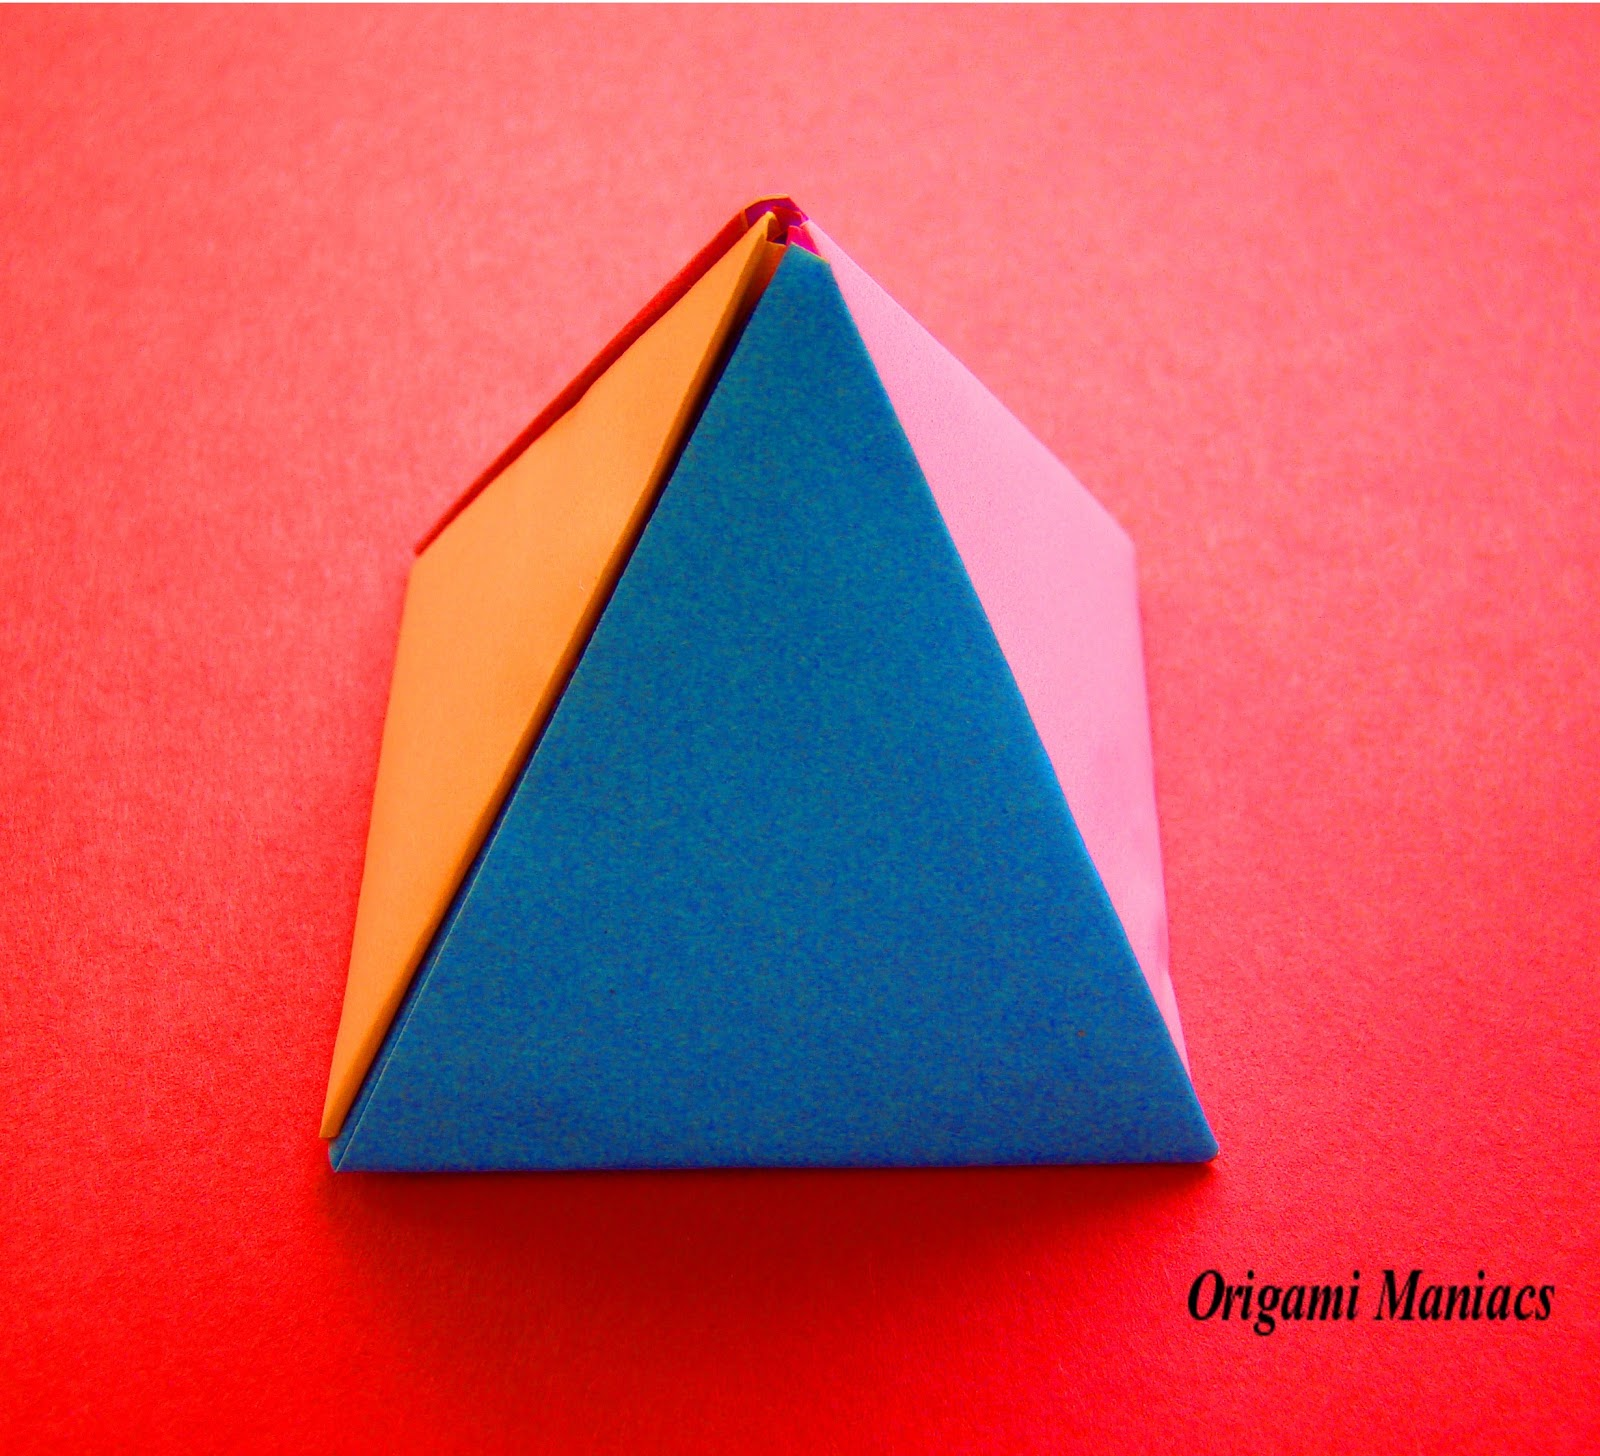 origami maniacs origami pyramids. Black Bedroom Furniture Sets. Home Design Ideas